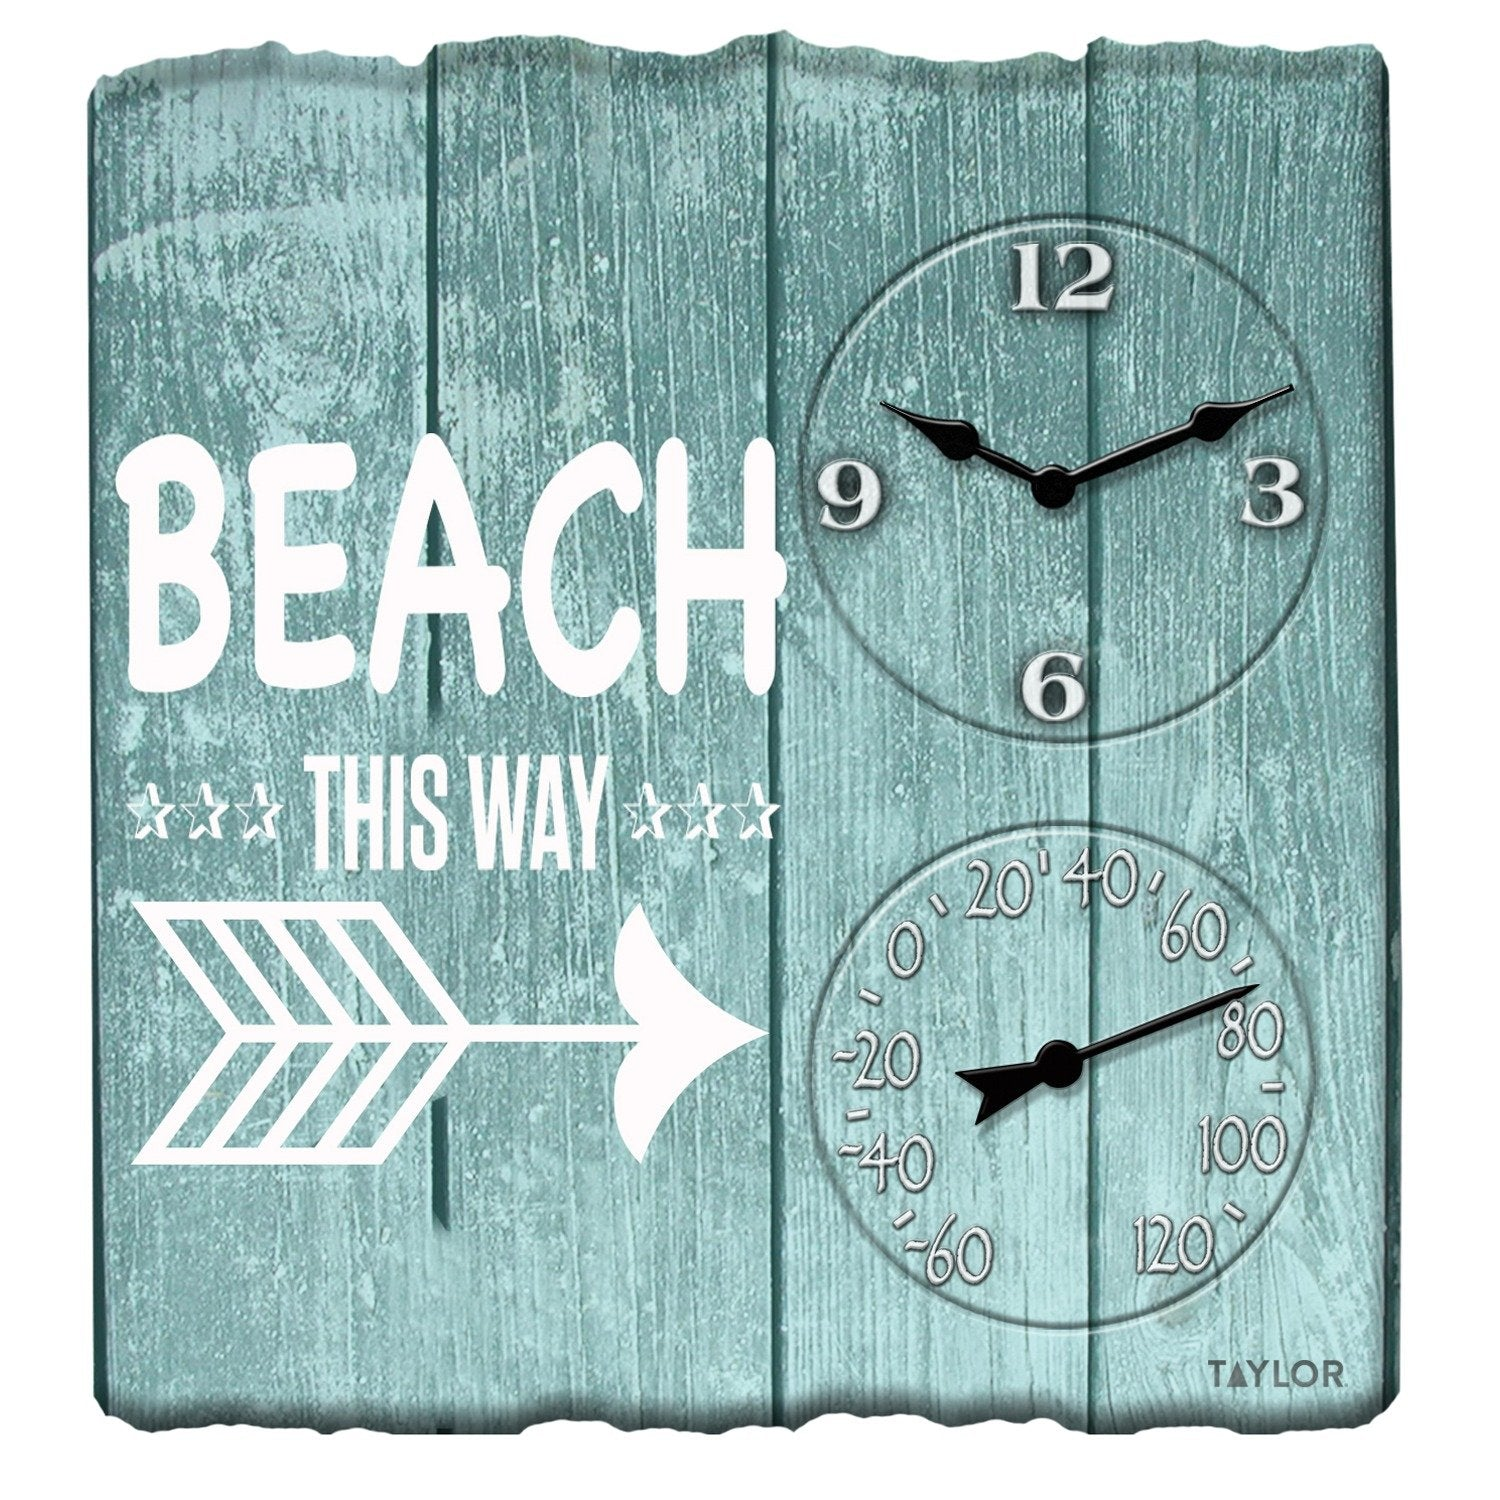 14-Inch x 14-Inch Beach This Way Clock with Thermometer - Northwest Homegoods